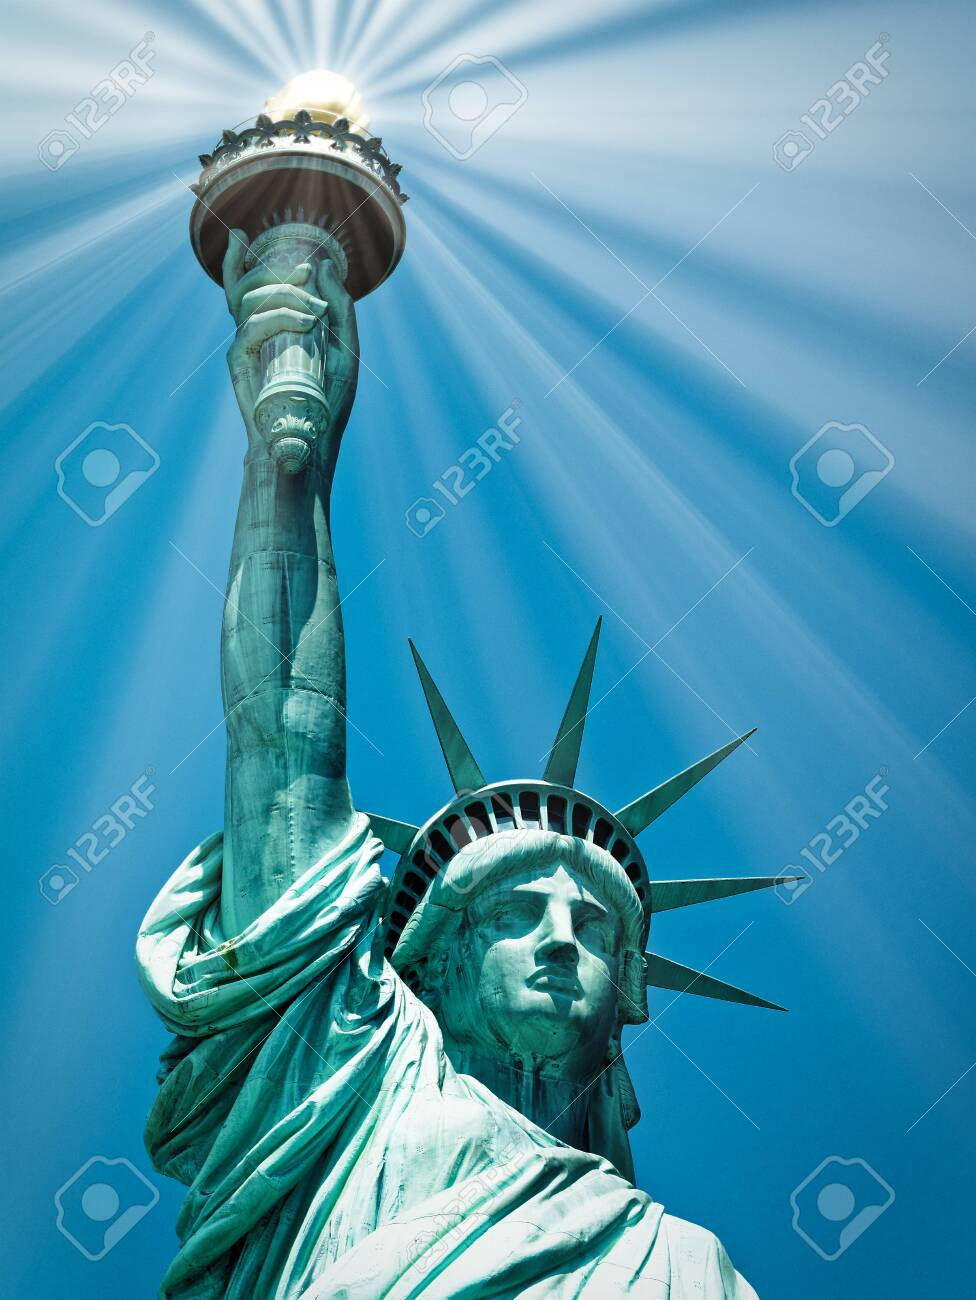 Statue Of Liberty Or Lady Liberty Manhattan New York City Usa.. Stock  Photo, Picture And Royalty Free Image. Image 146843314.